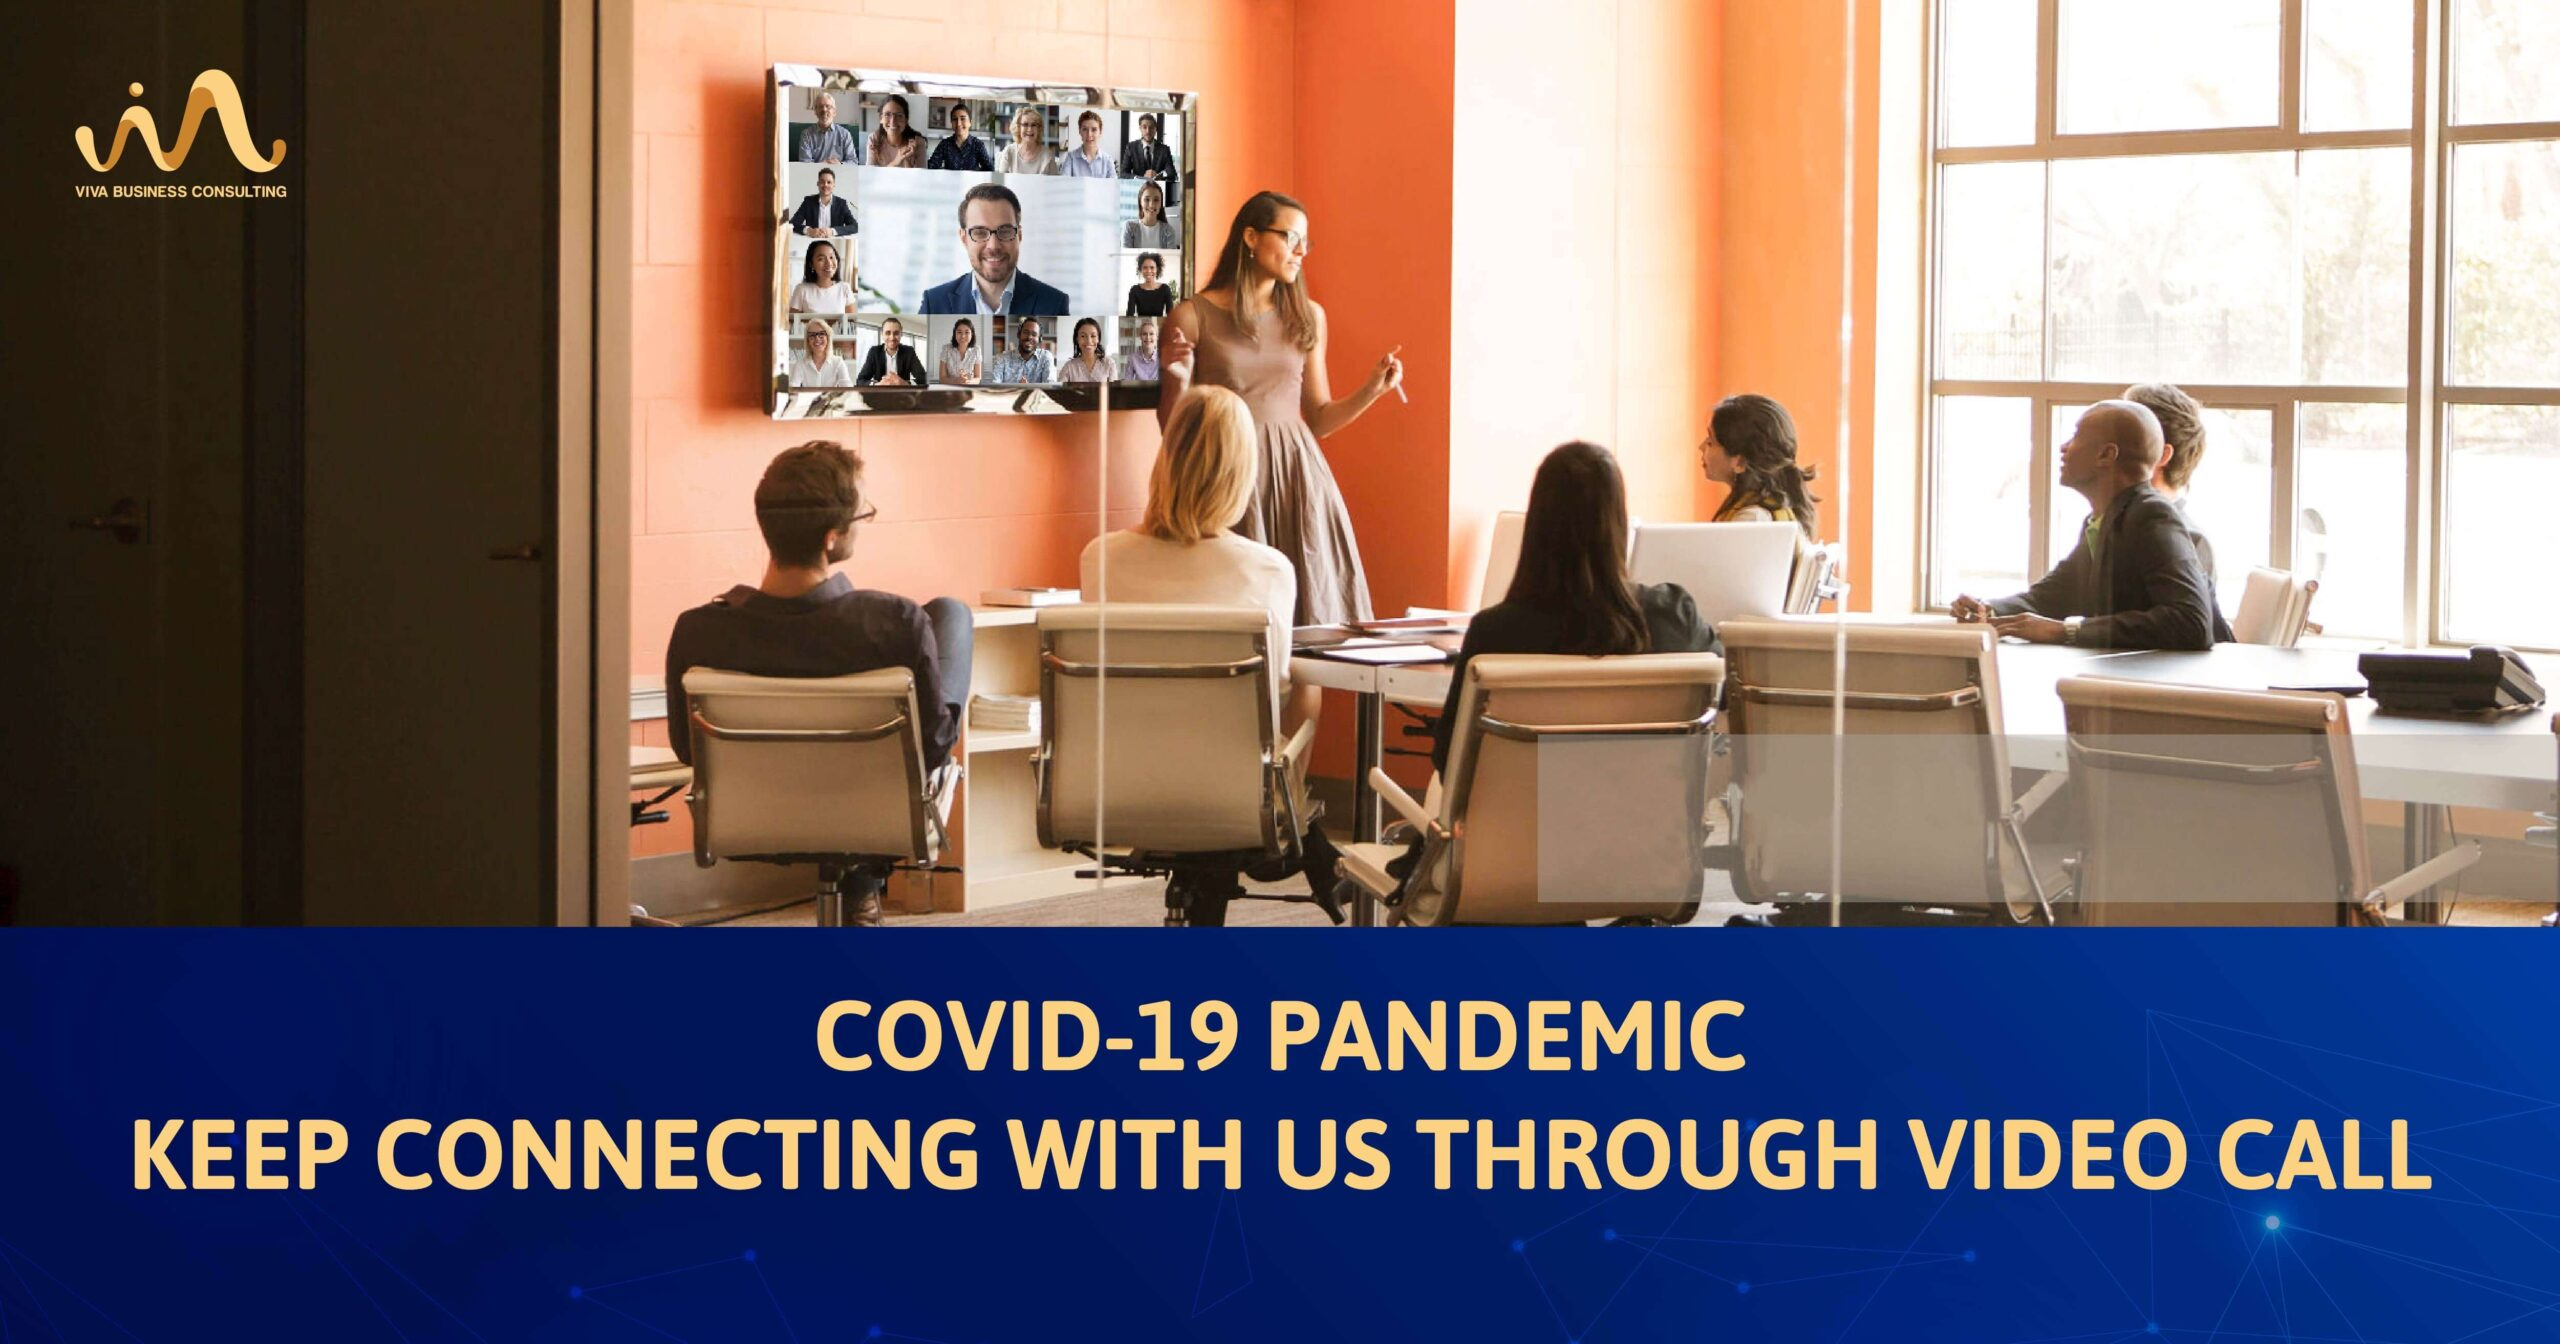 Covid-19 Pandemic, keep connecting with us through video call